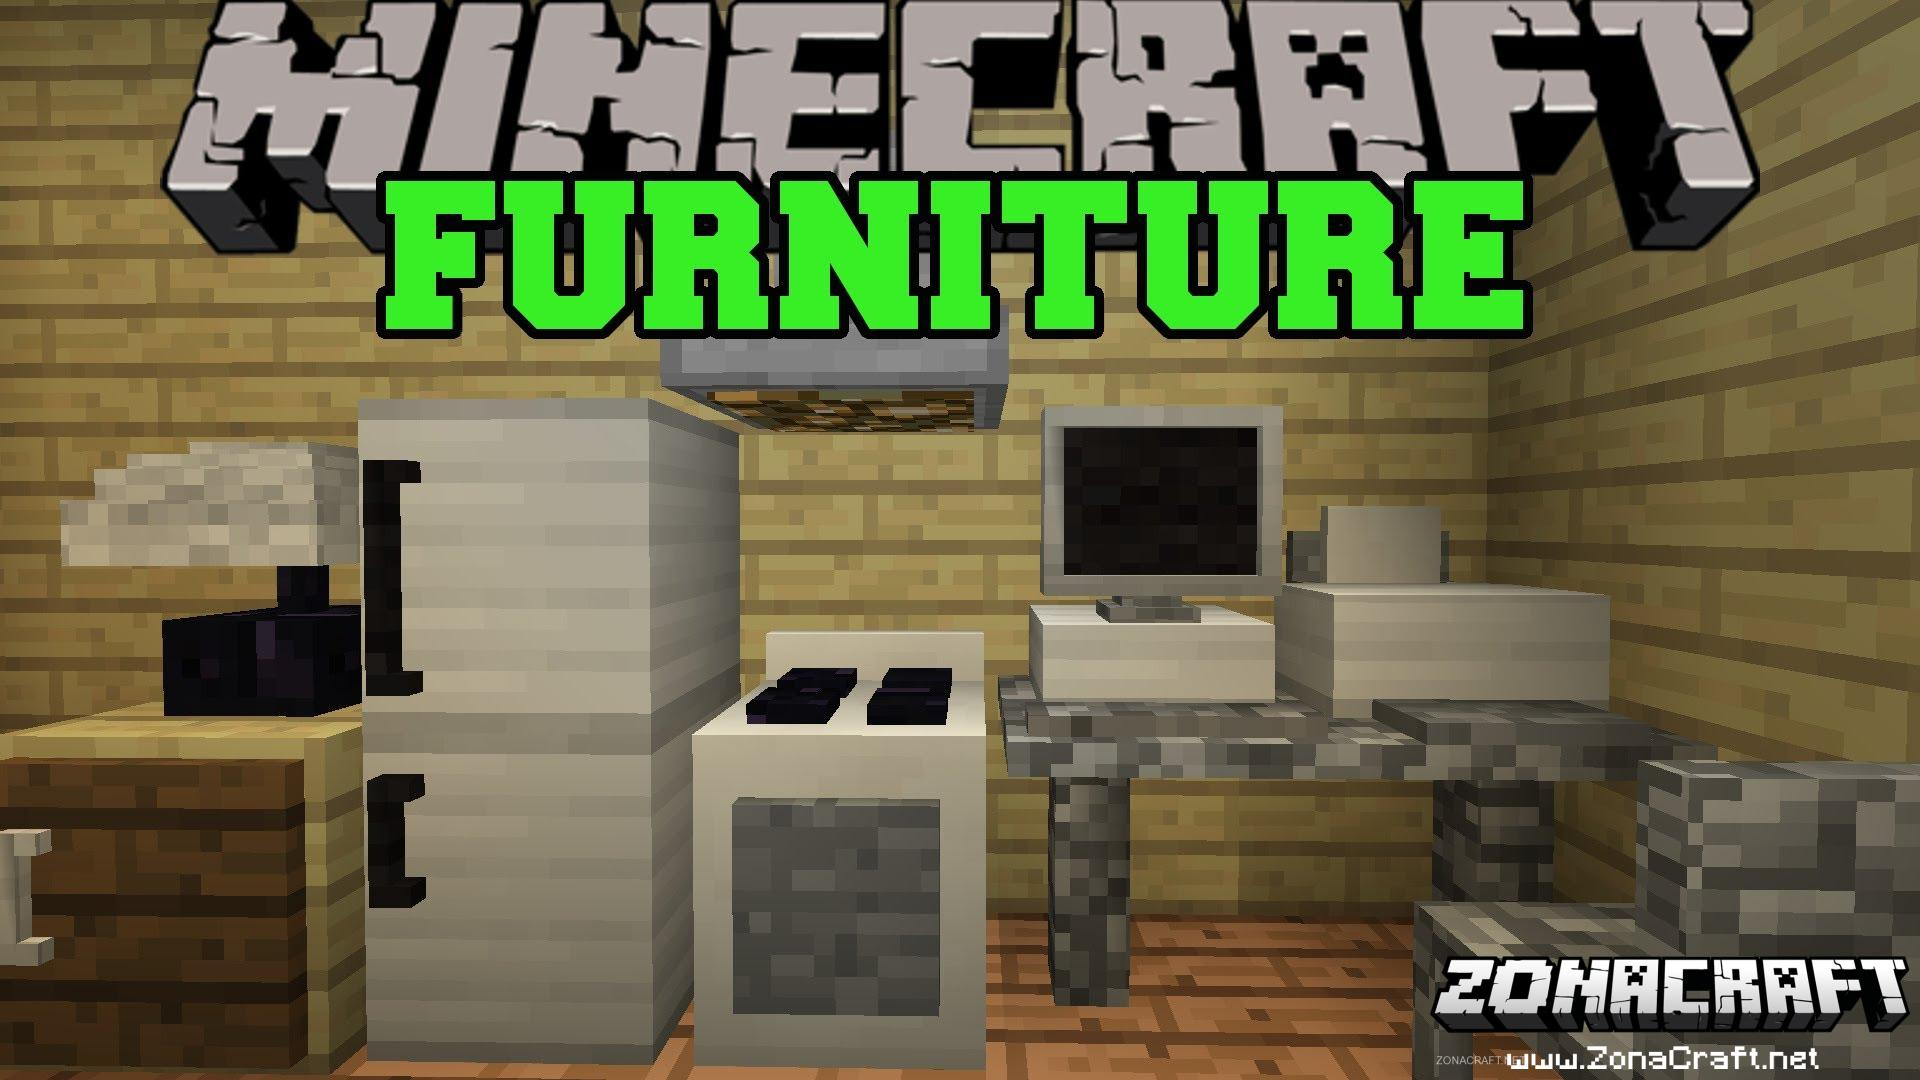 Furniture Mod Para Minecraft - Skin para minecraft 1 8 9 sin descargar nada